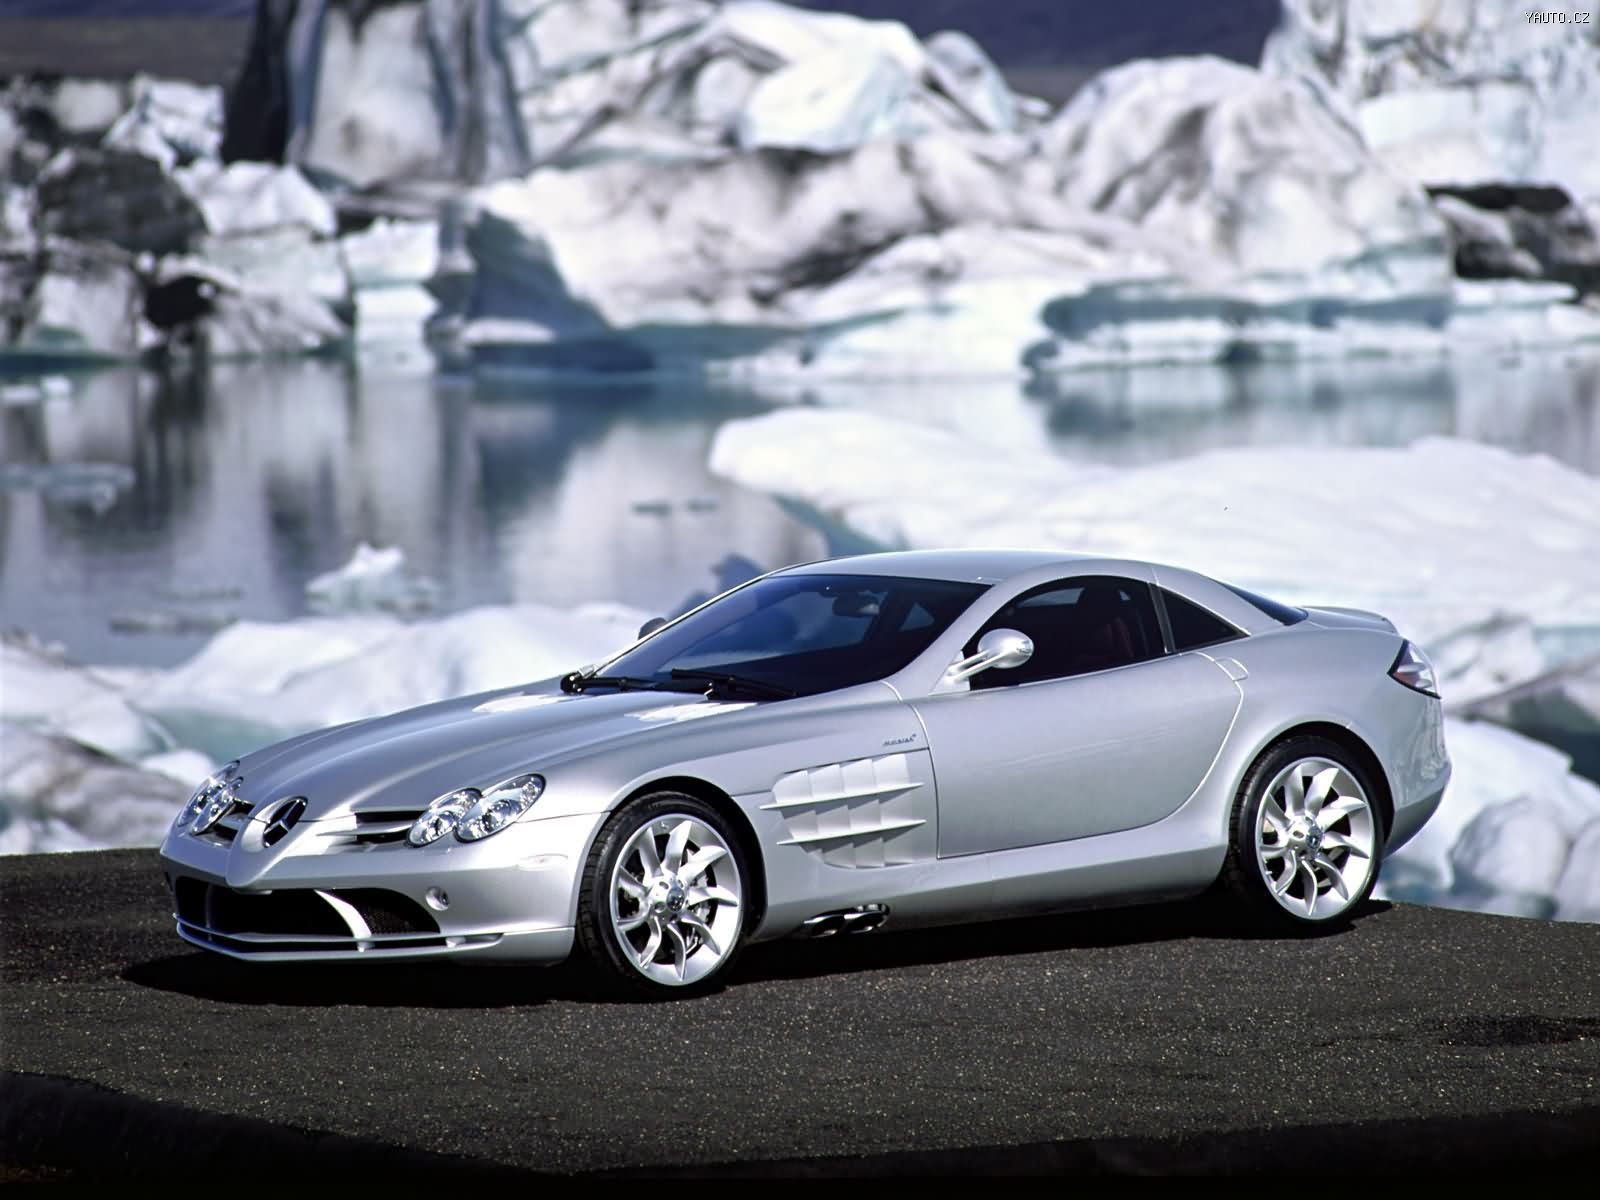 Mercedes benz slr mclaren 2004 auta na plochu tapety na for Mercedes benz na